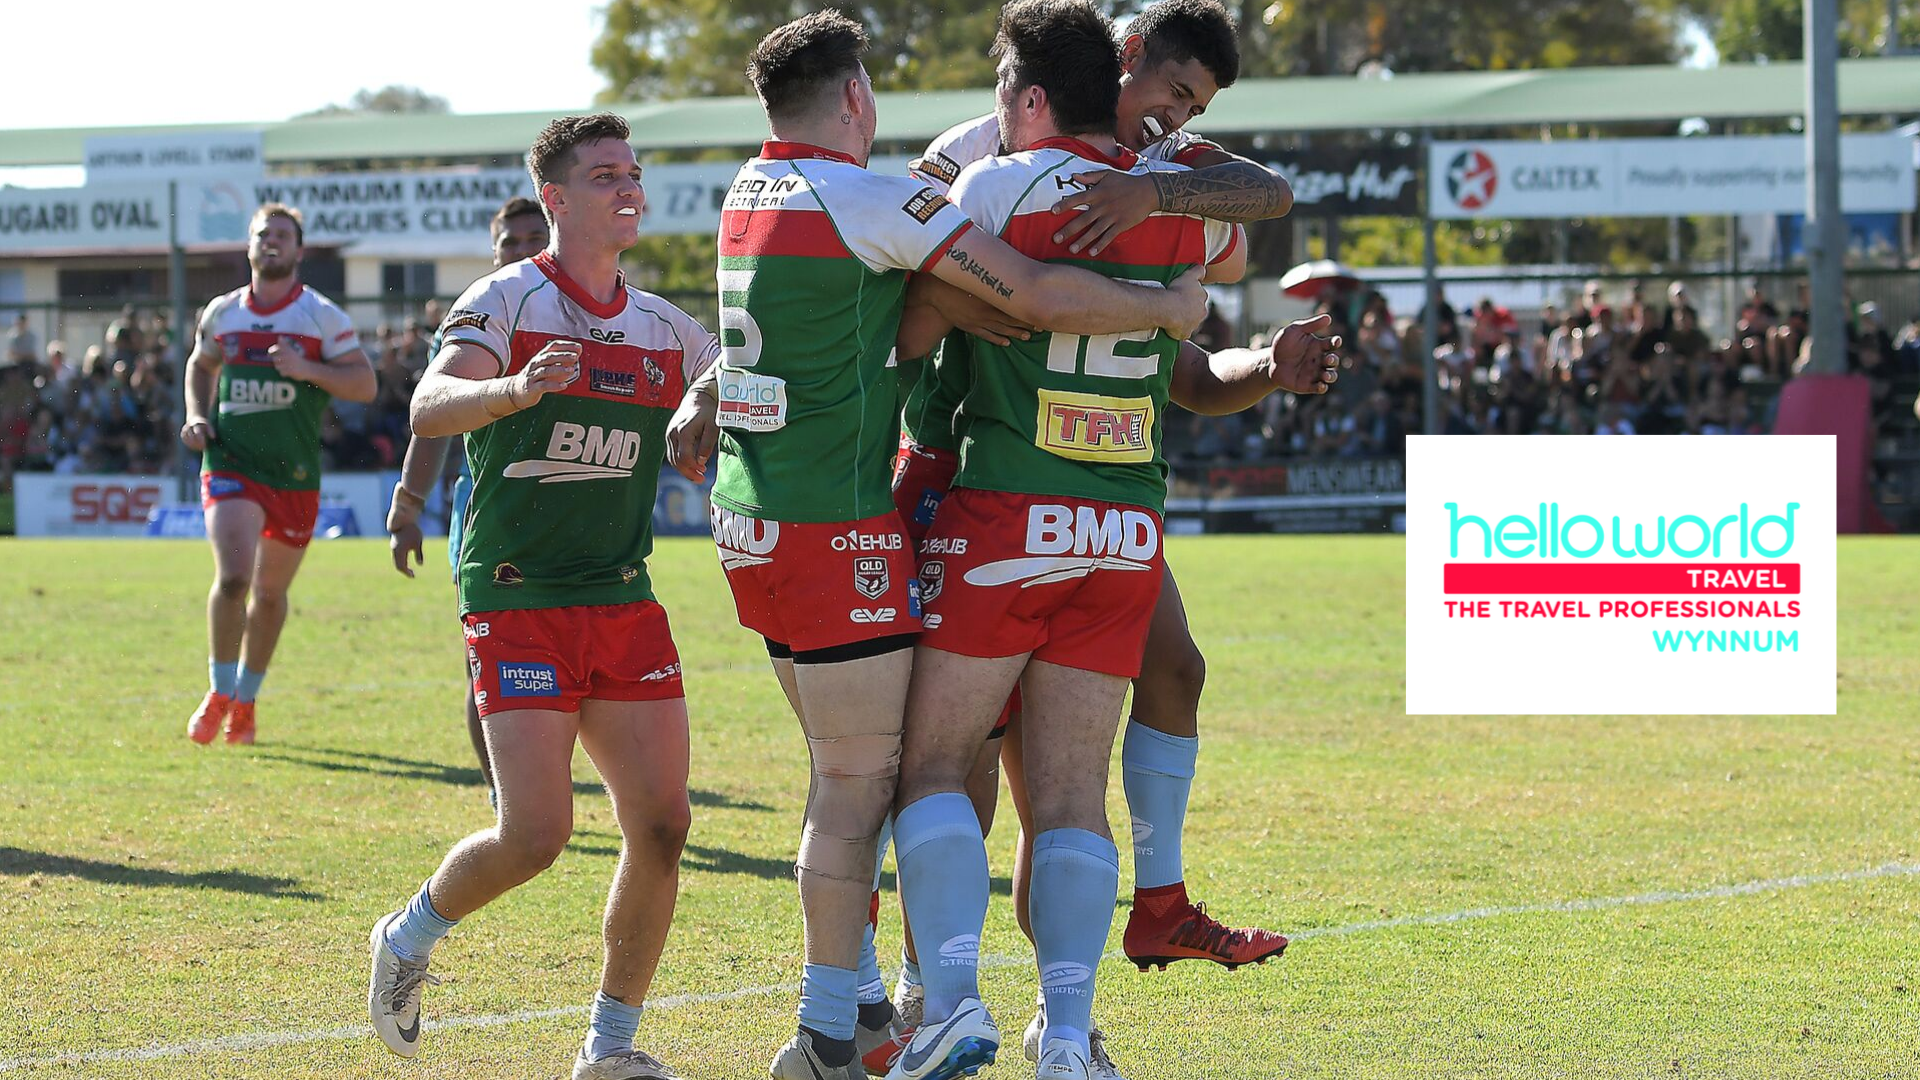 Townsville away trip supporter package available for Gulls fans